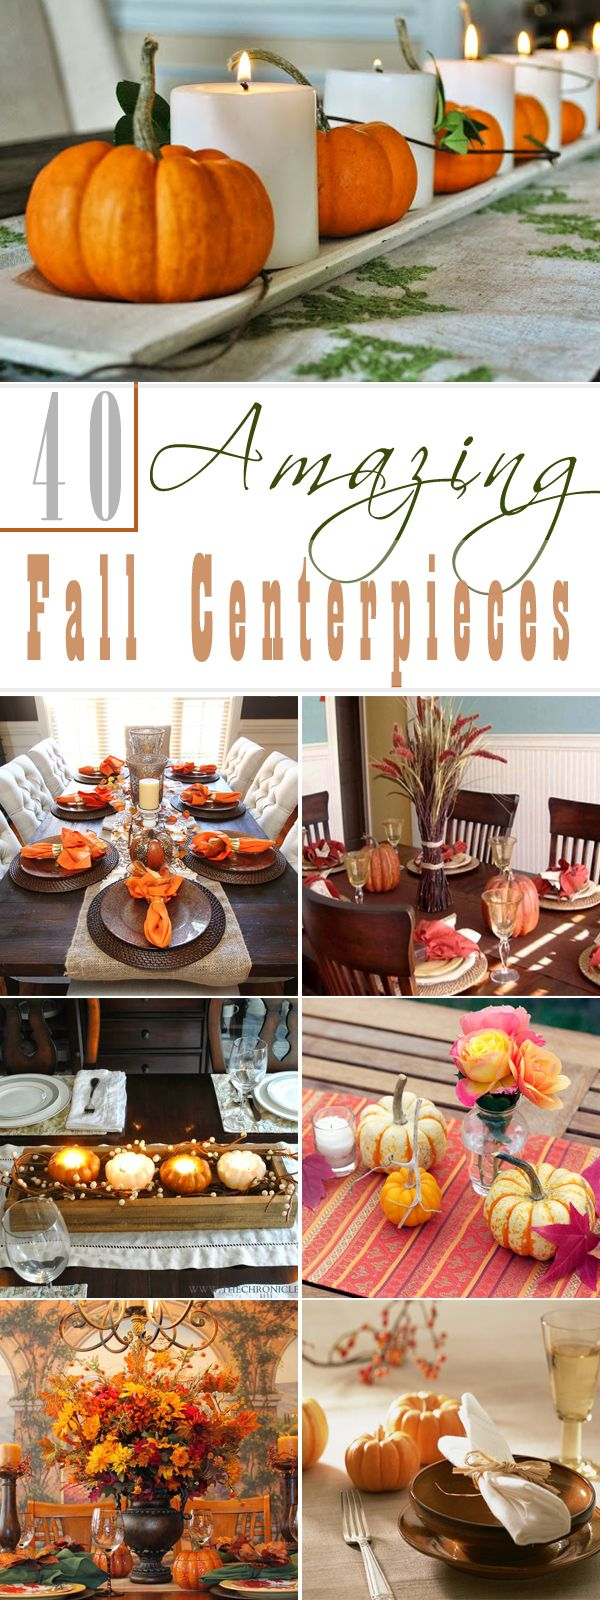 Best 25 Fall Arrangements Ideas On Pinterest Fall Table